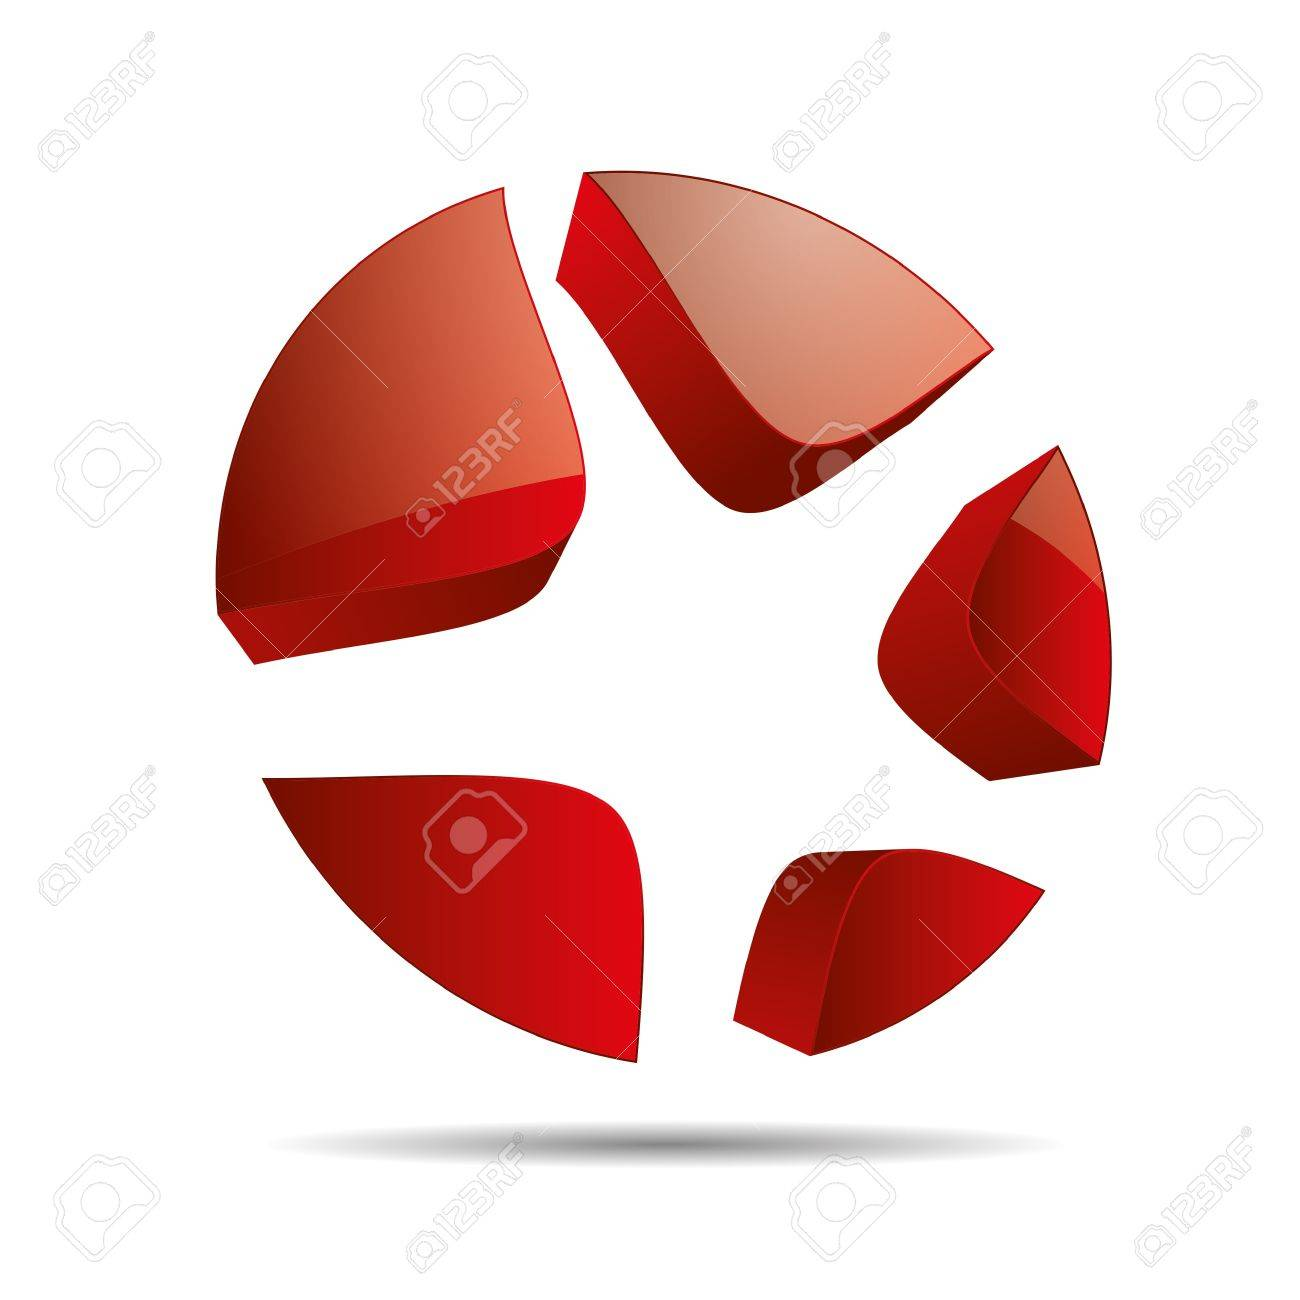 3D abstract red star starfish christmas template design icon logo trademark Stock Vector - 15621667